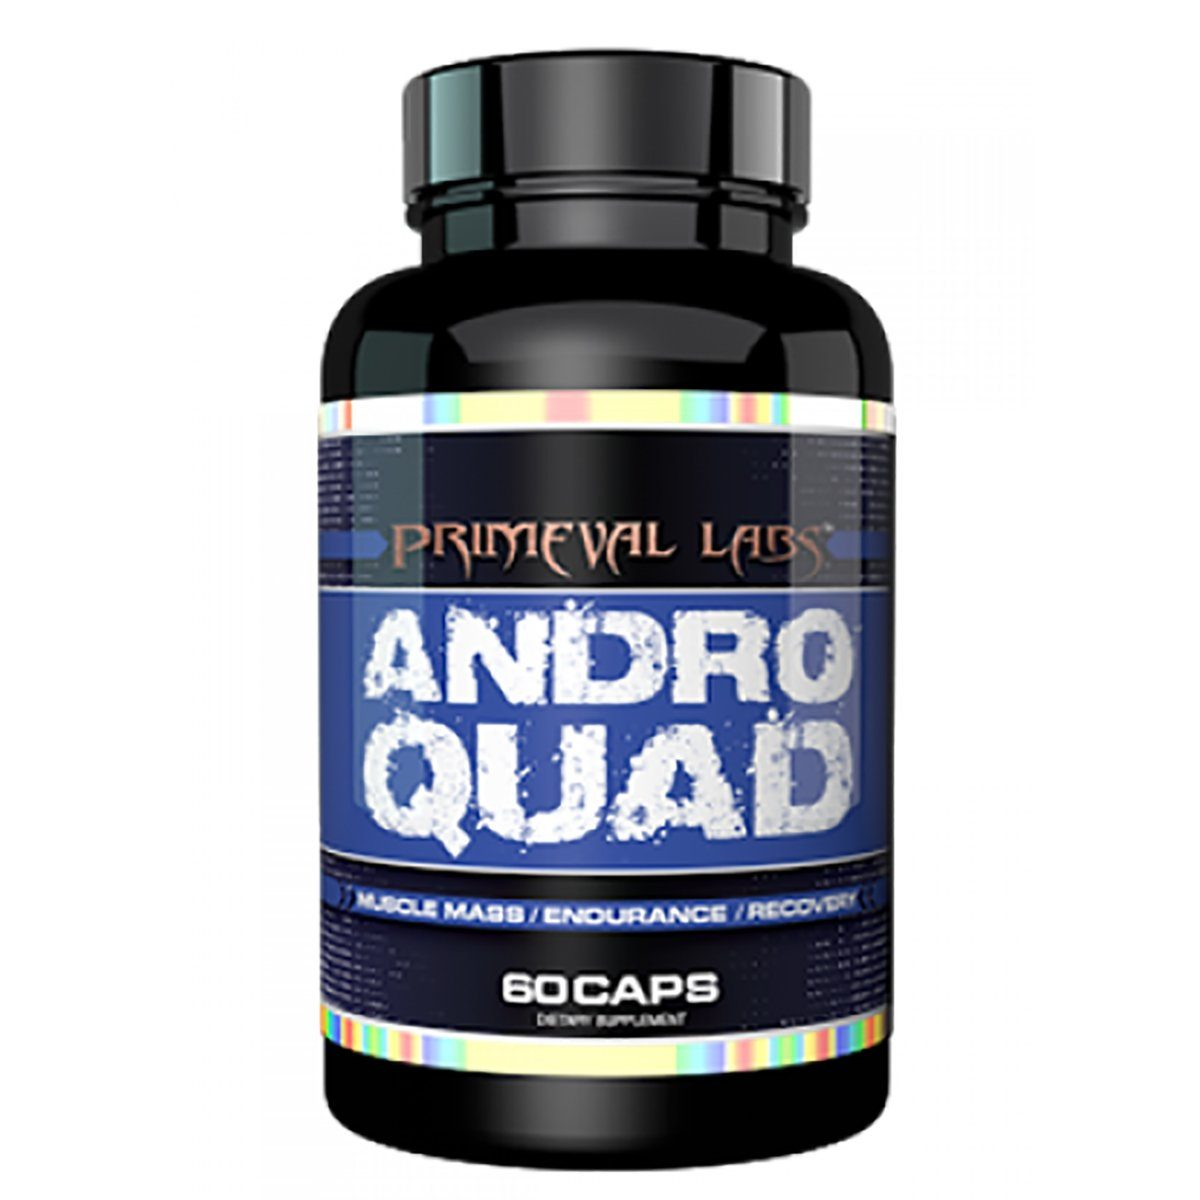 Primeval Labs Andro Quad 60 Tabs Prohormones, Andro & Support Primeval Labs  (1059216064555)